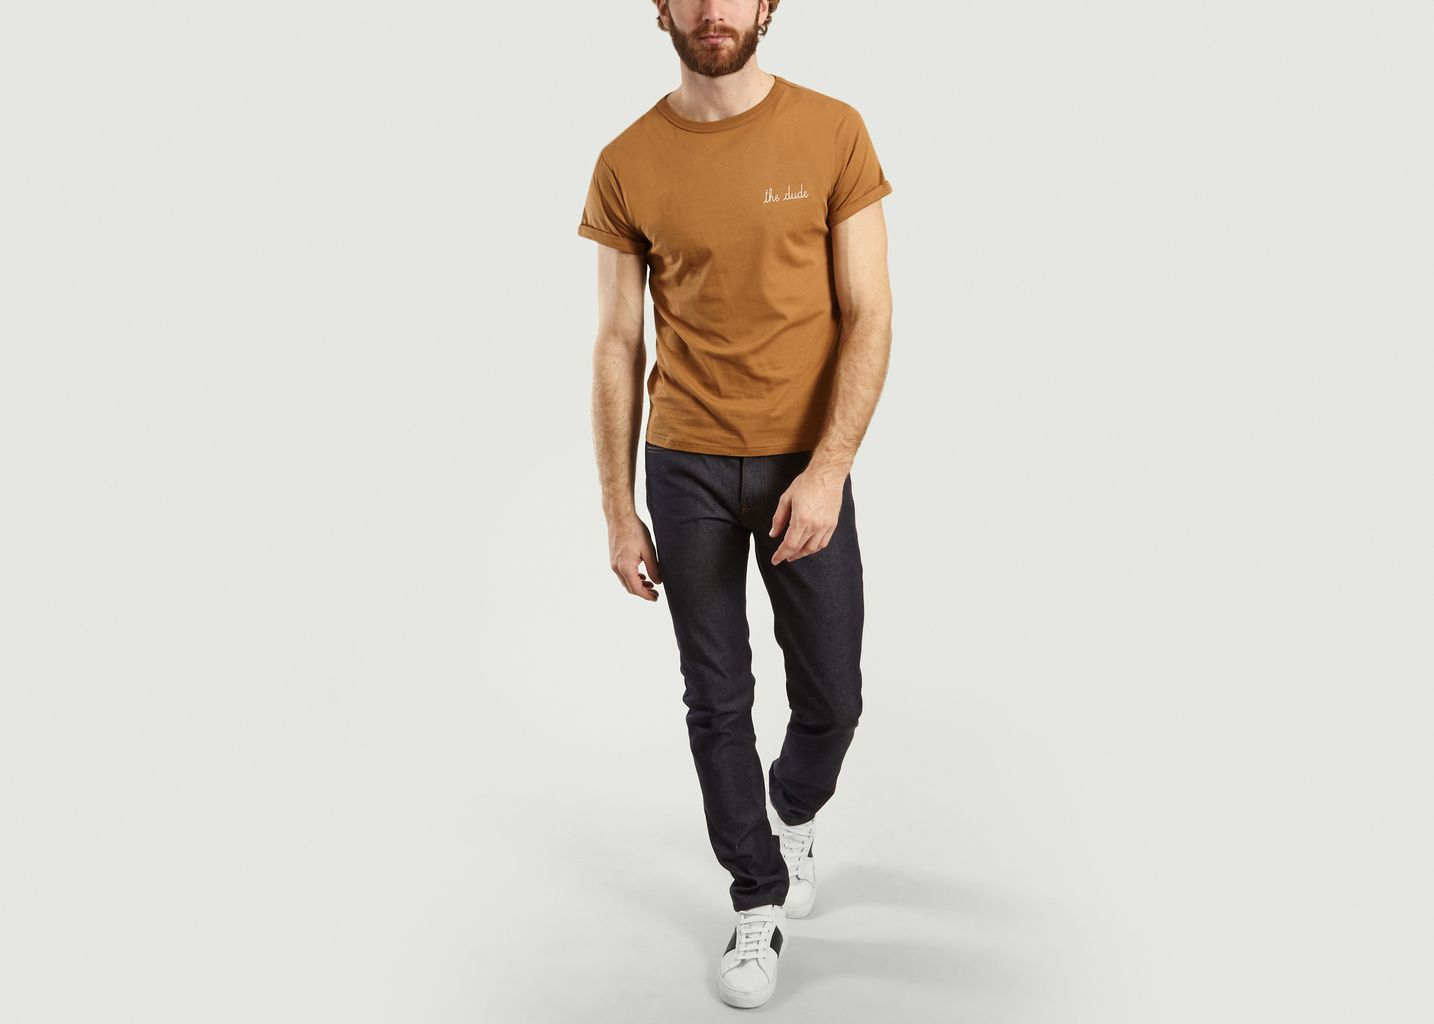 T-Shirt Brodé The Dude - Maison Labiche